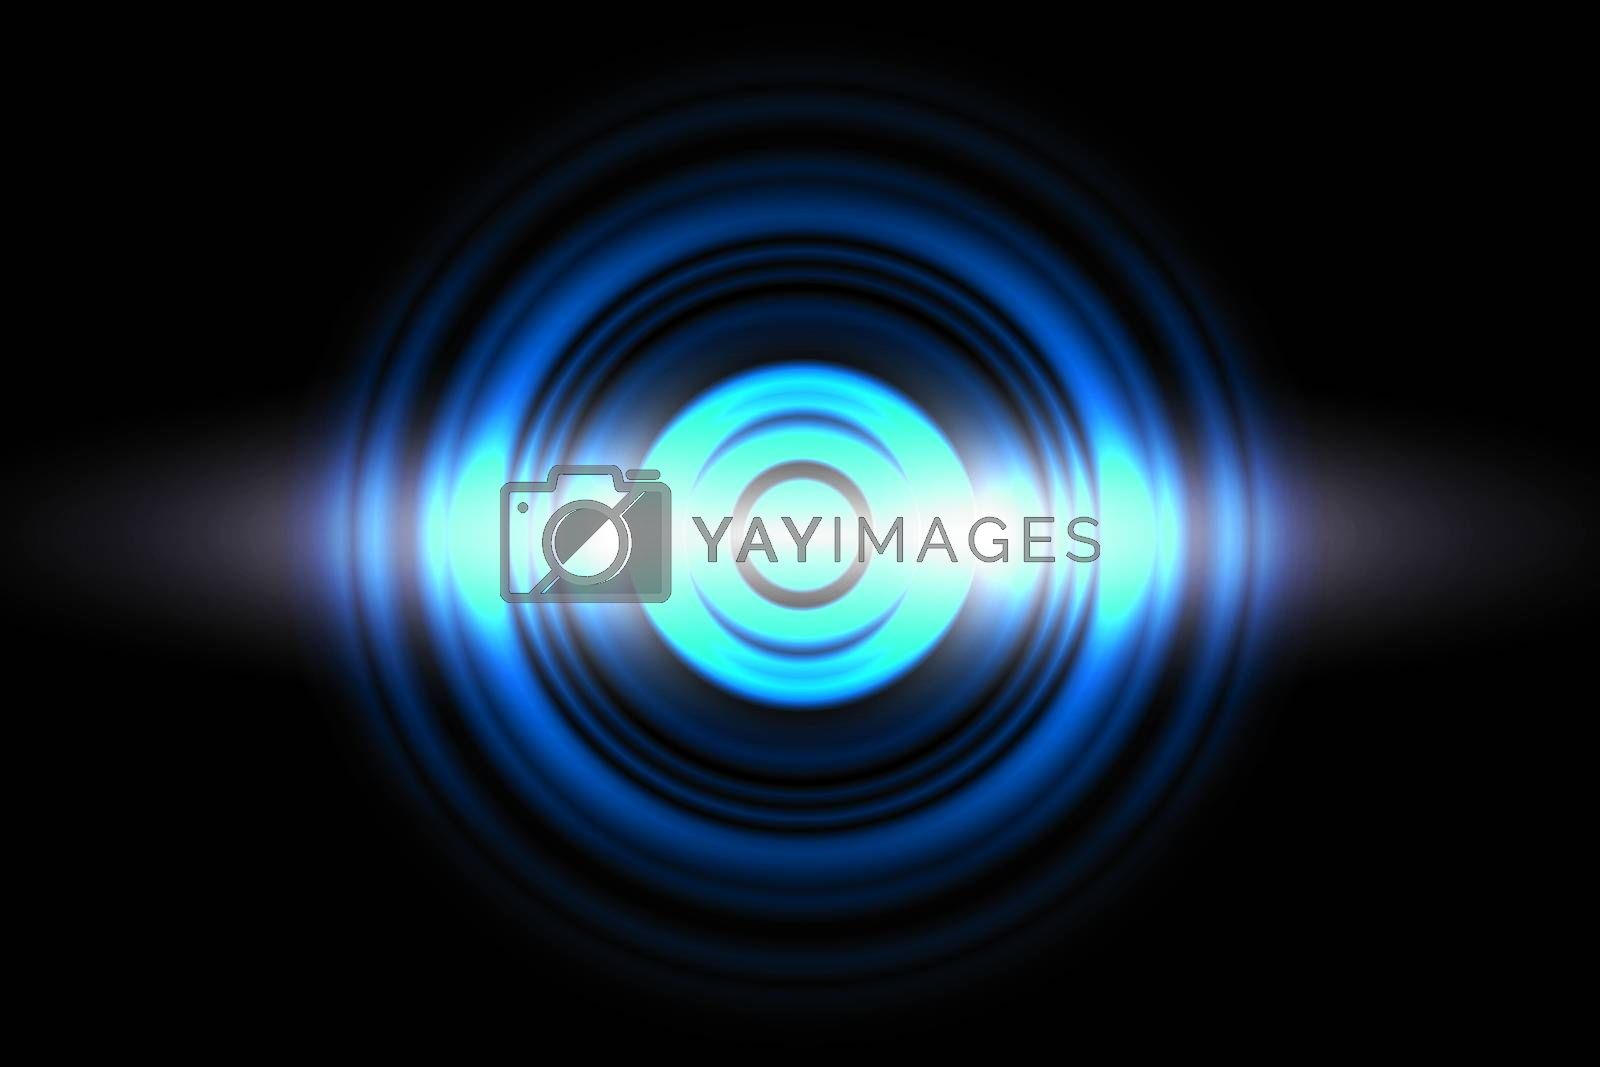 Sound waves oscillating blue light with circle spin, abstract background by mouu007